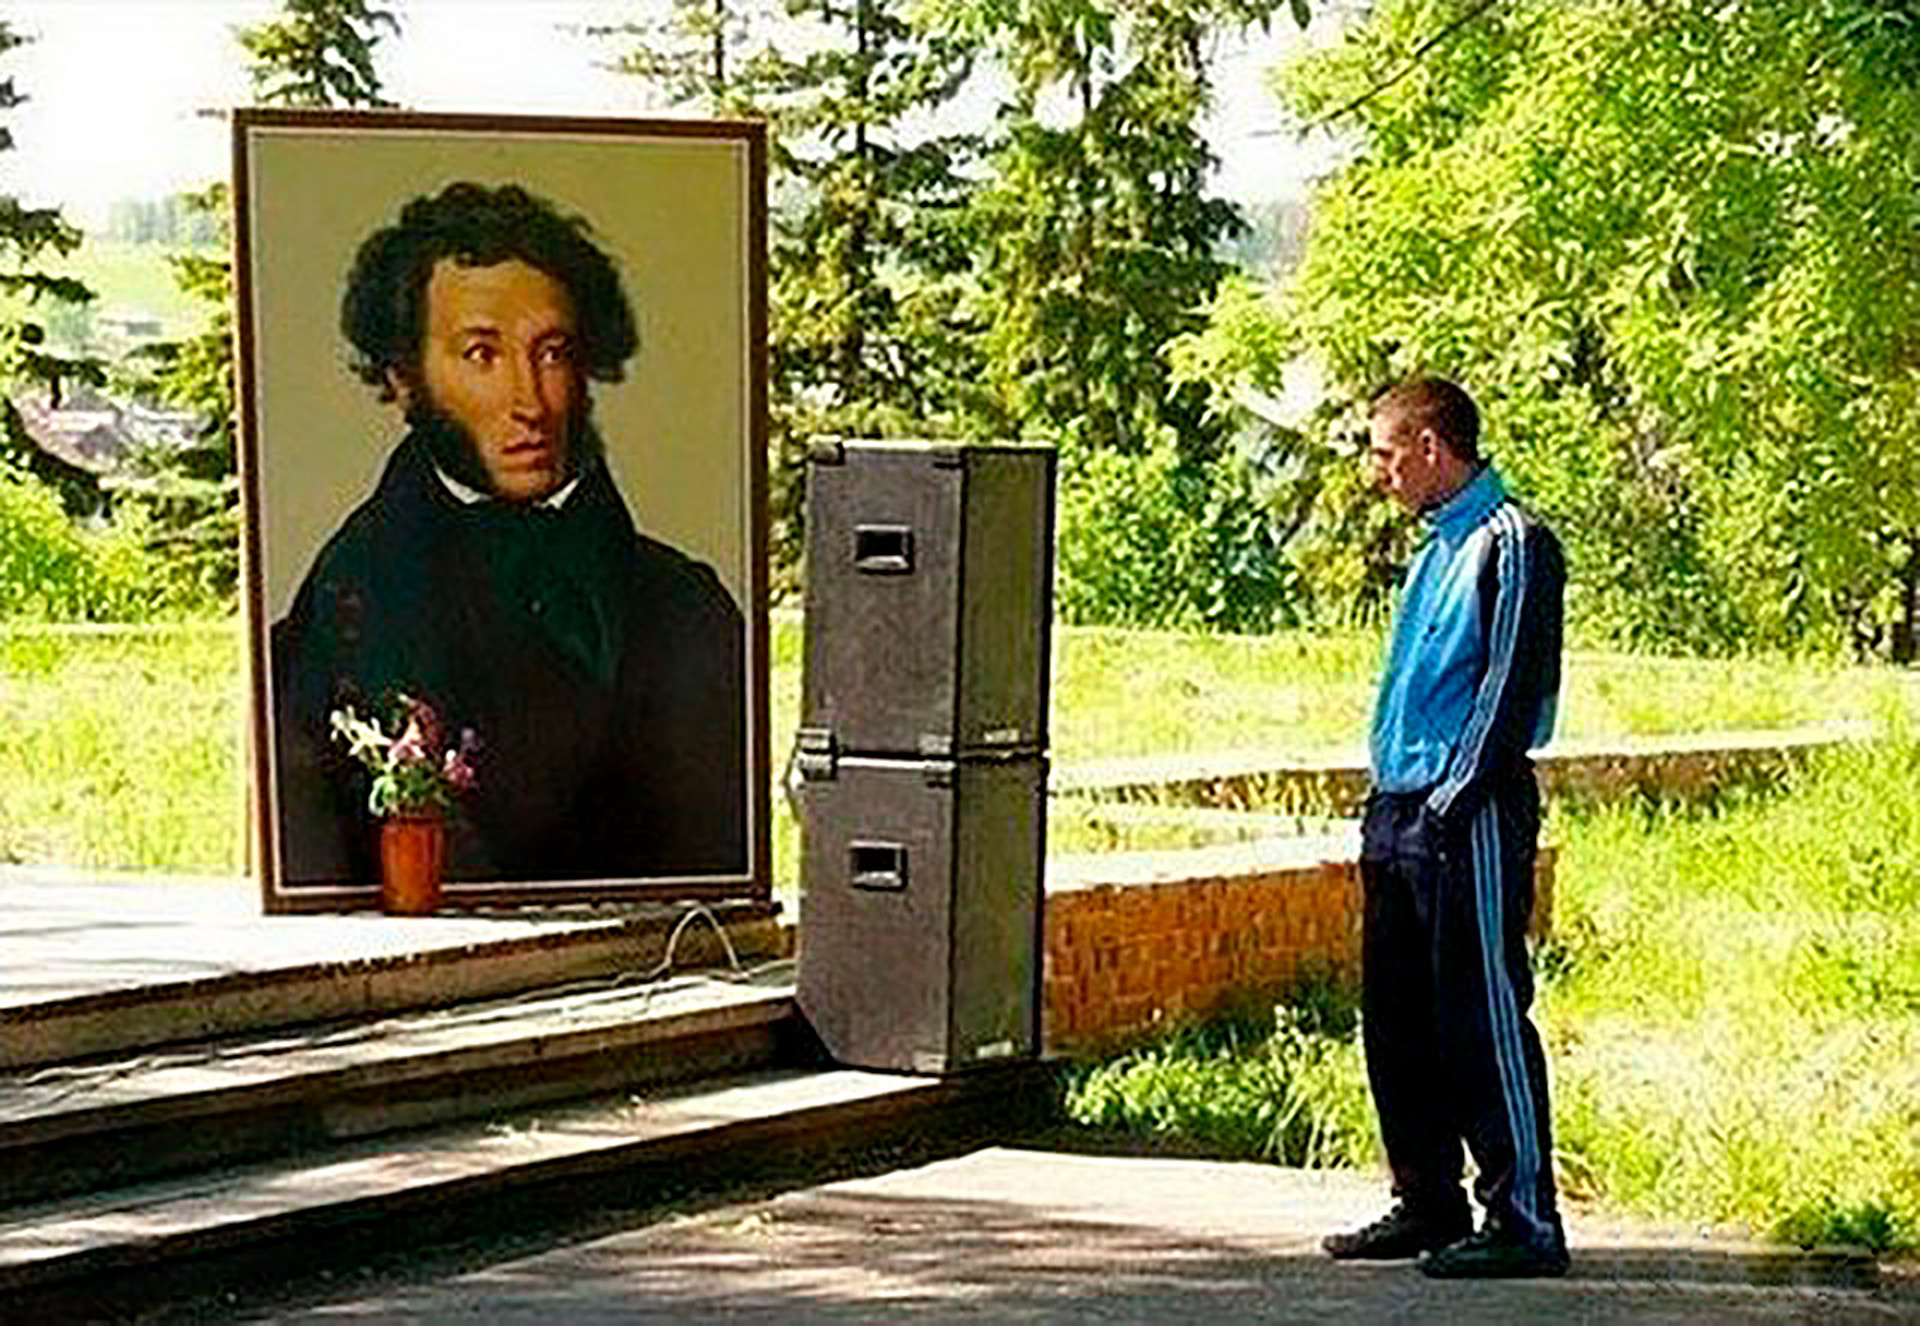 The ancestor (Alexander Pushkin, the most famous Russian poet) and the descendant (some gopnik).